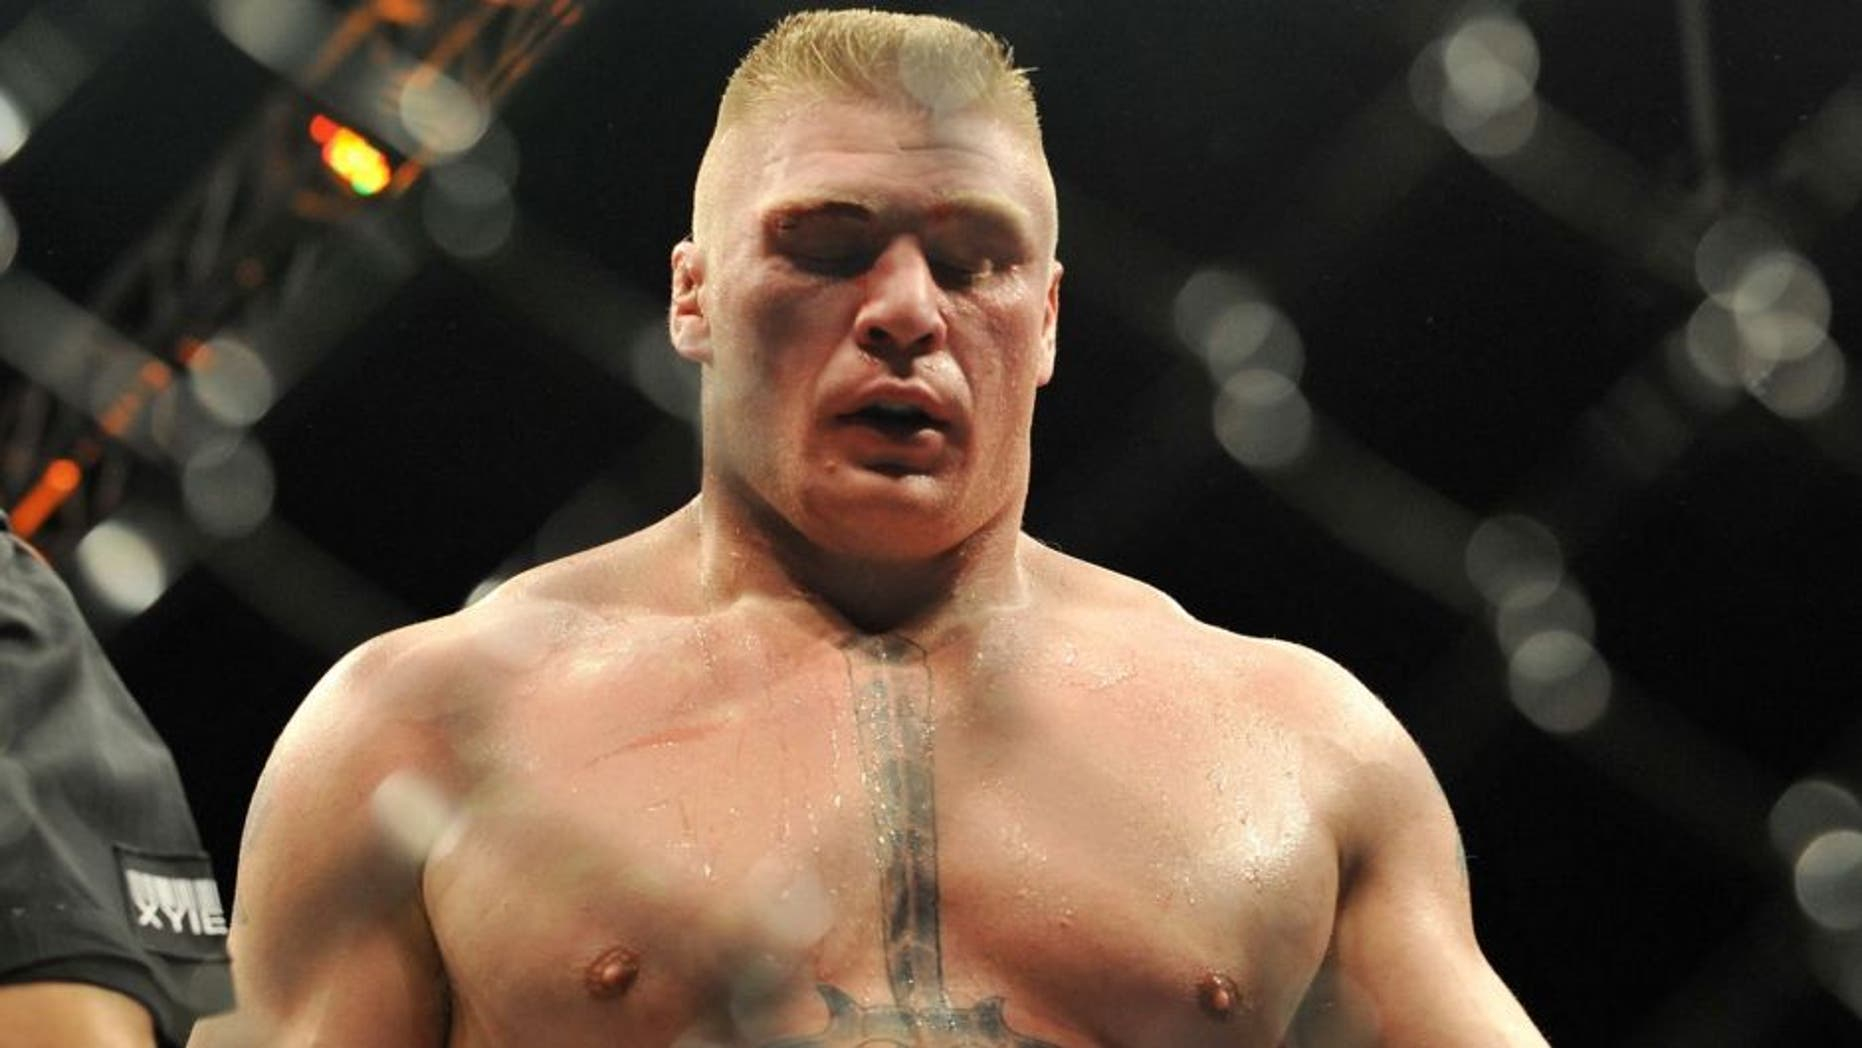 punches at the UFC 91: Couture vs. Lesnar at the MGM Garden Arena on November 15, 2008 in Las Vegas, Nevada.